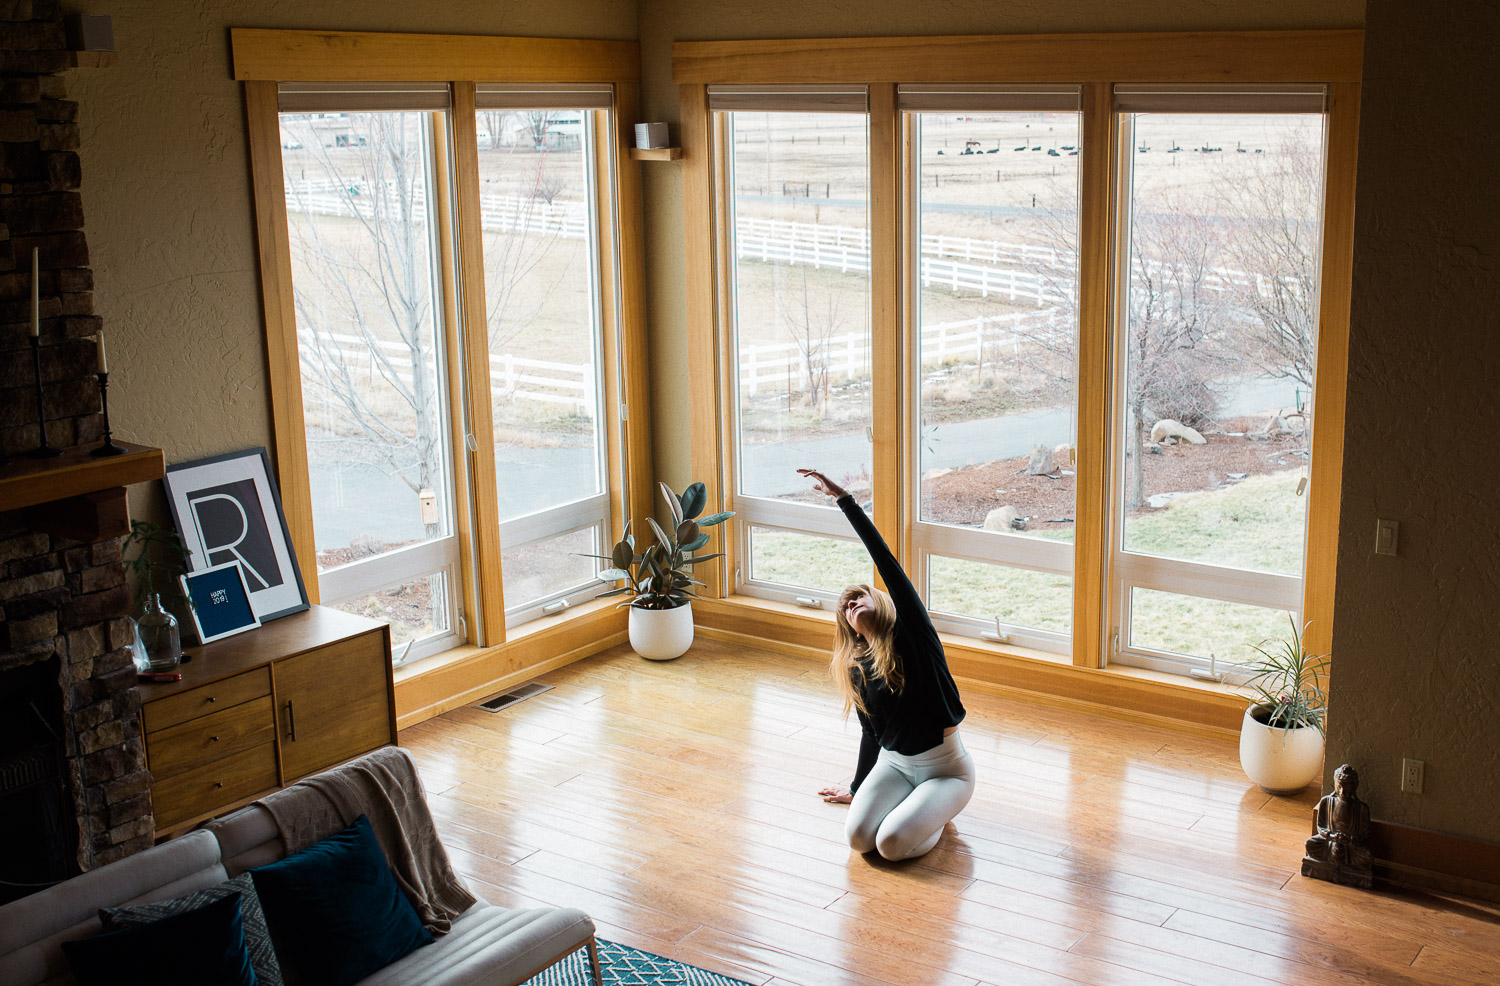 I teach yoga and some variation of this side body stretch is almost always part of the warm up. One of the things I first loved about yoga is the freedom you feel in your body when you move in ways you don't during your normal day-to-day life.